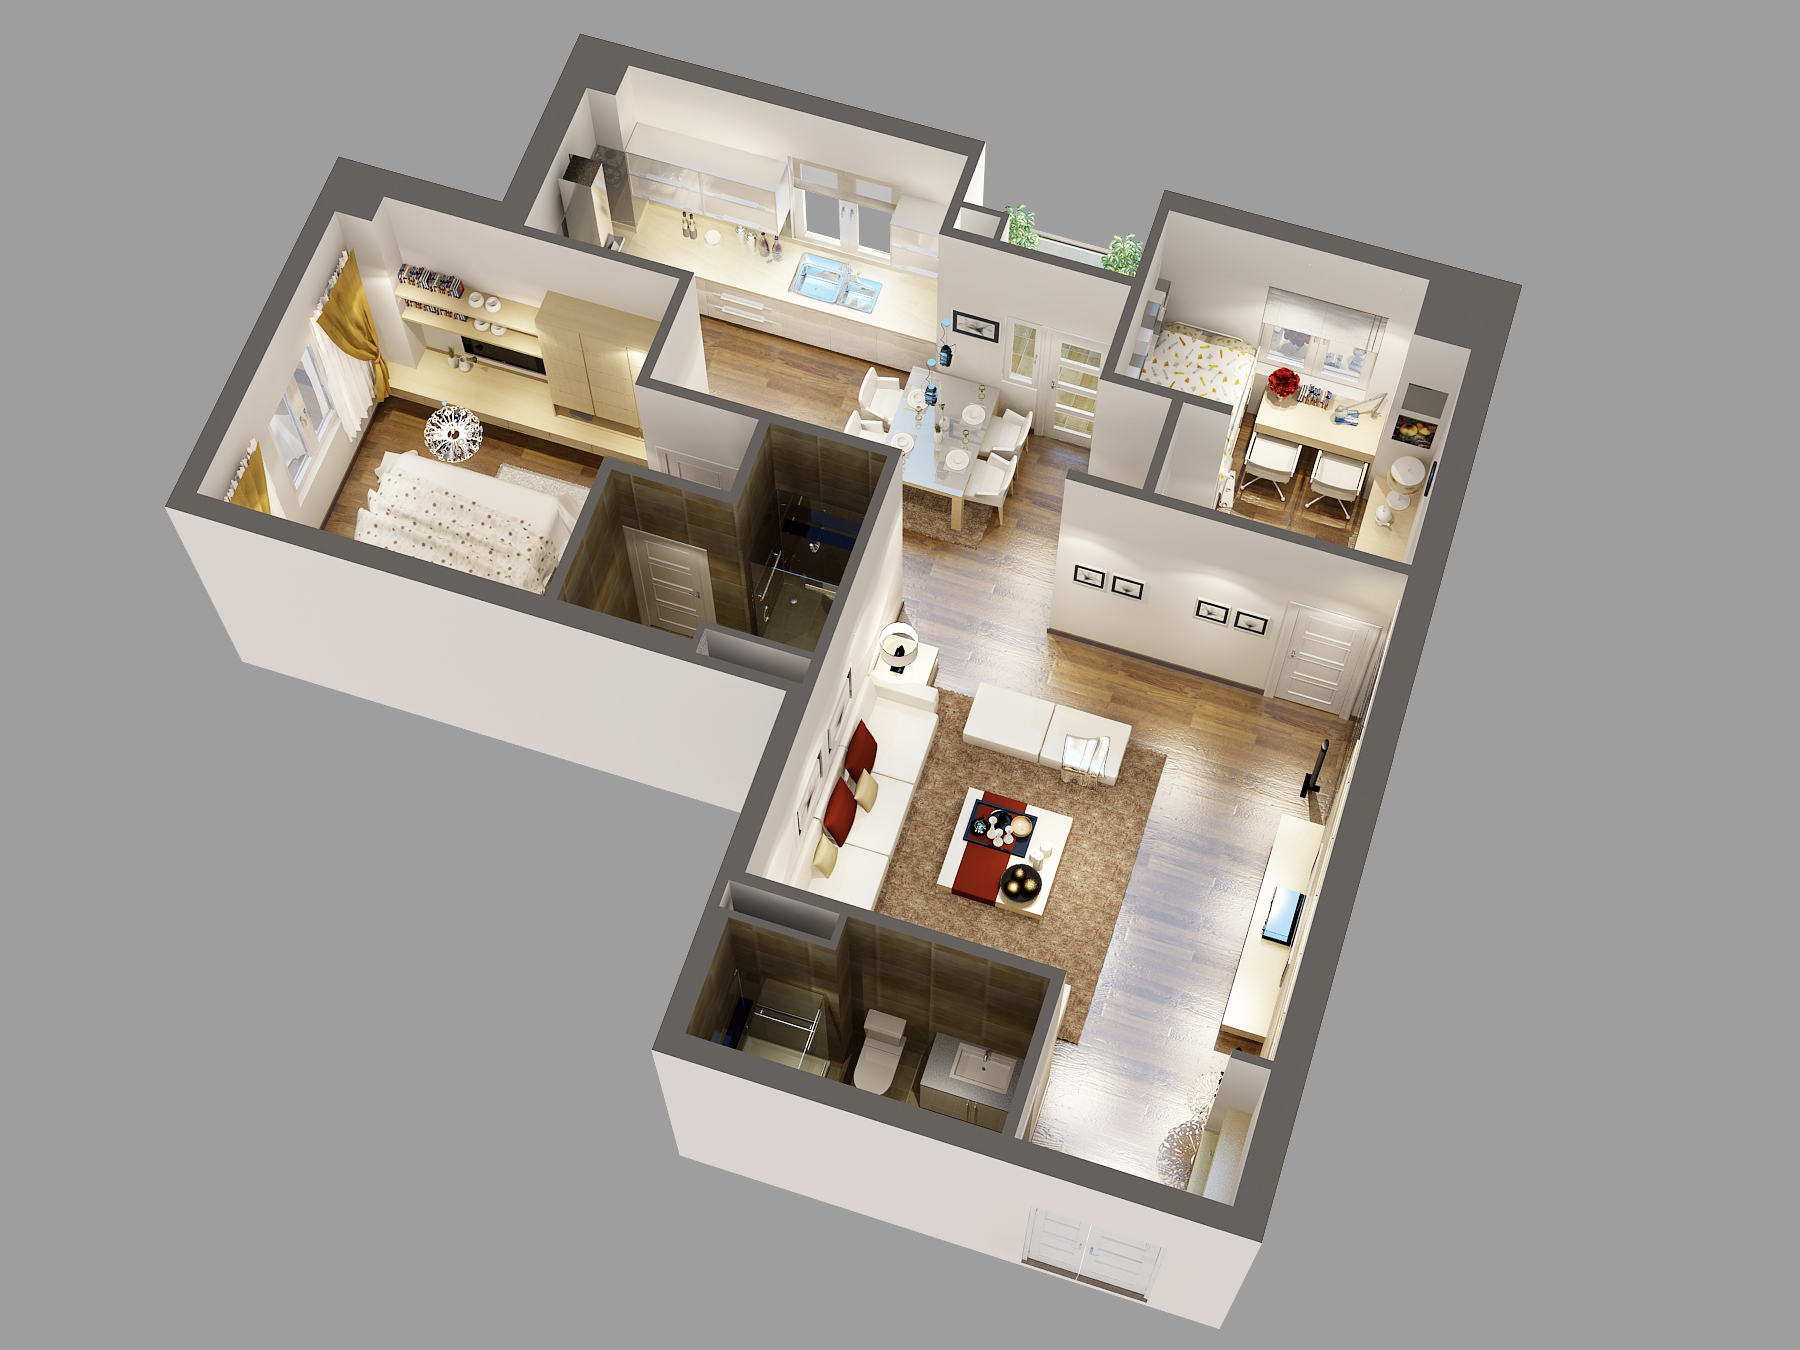 Detailed house cutaway 3d model 3d model max for Decor 3d model